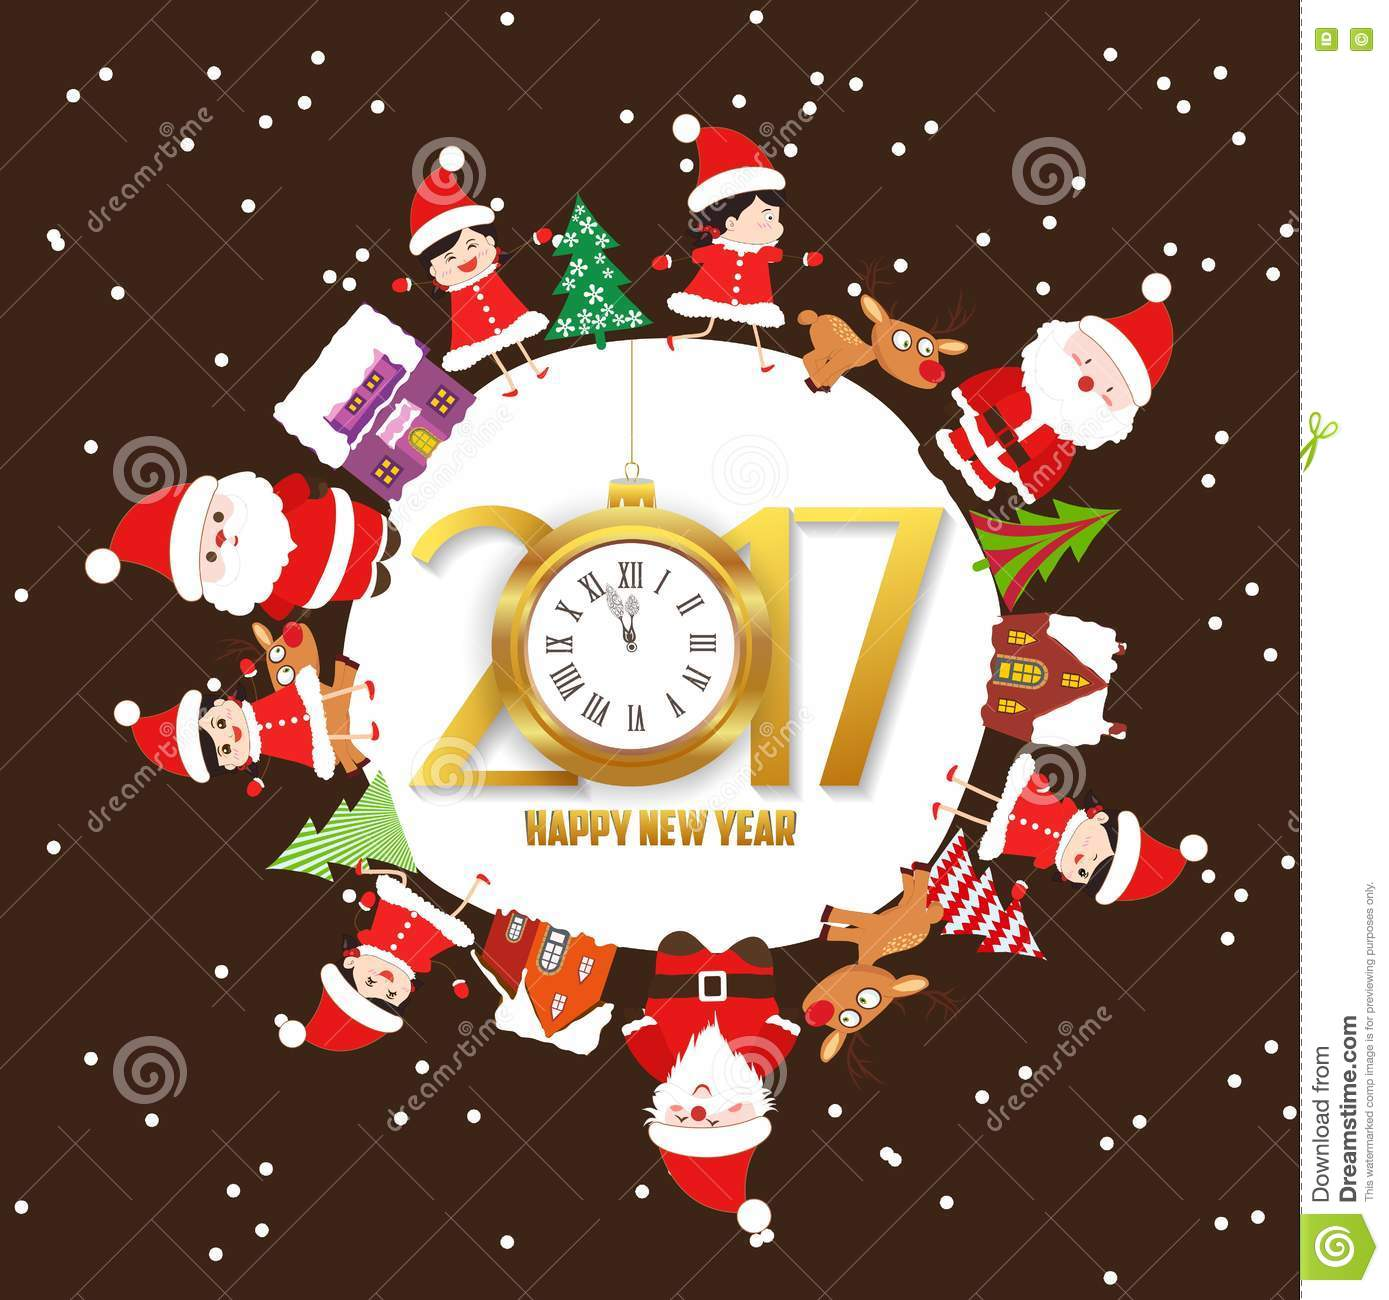 merry christmas and happy new year 2017 with kids and clock on earth greeting card